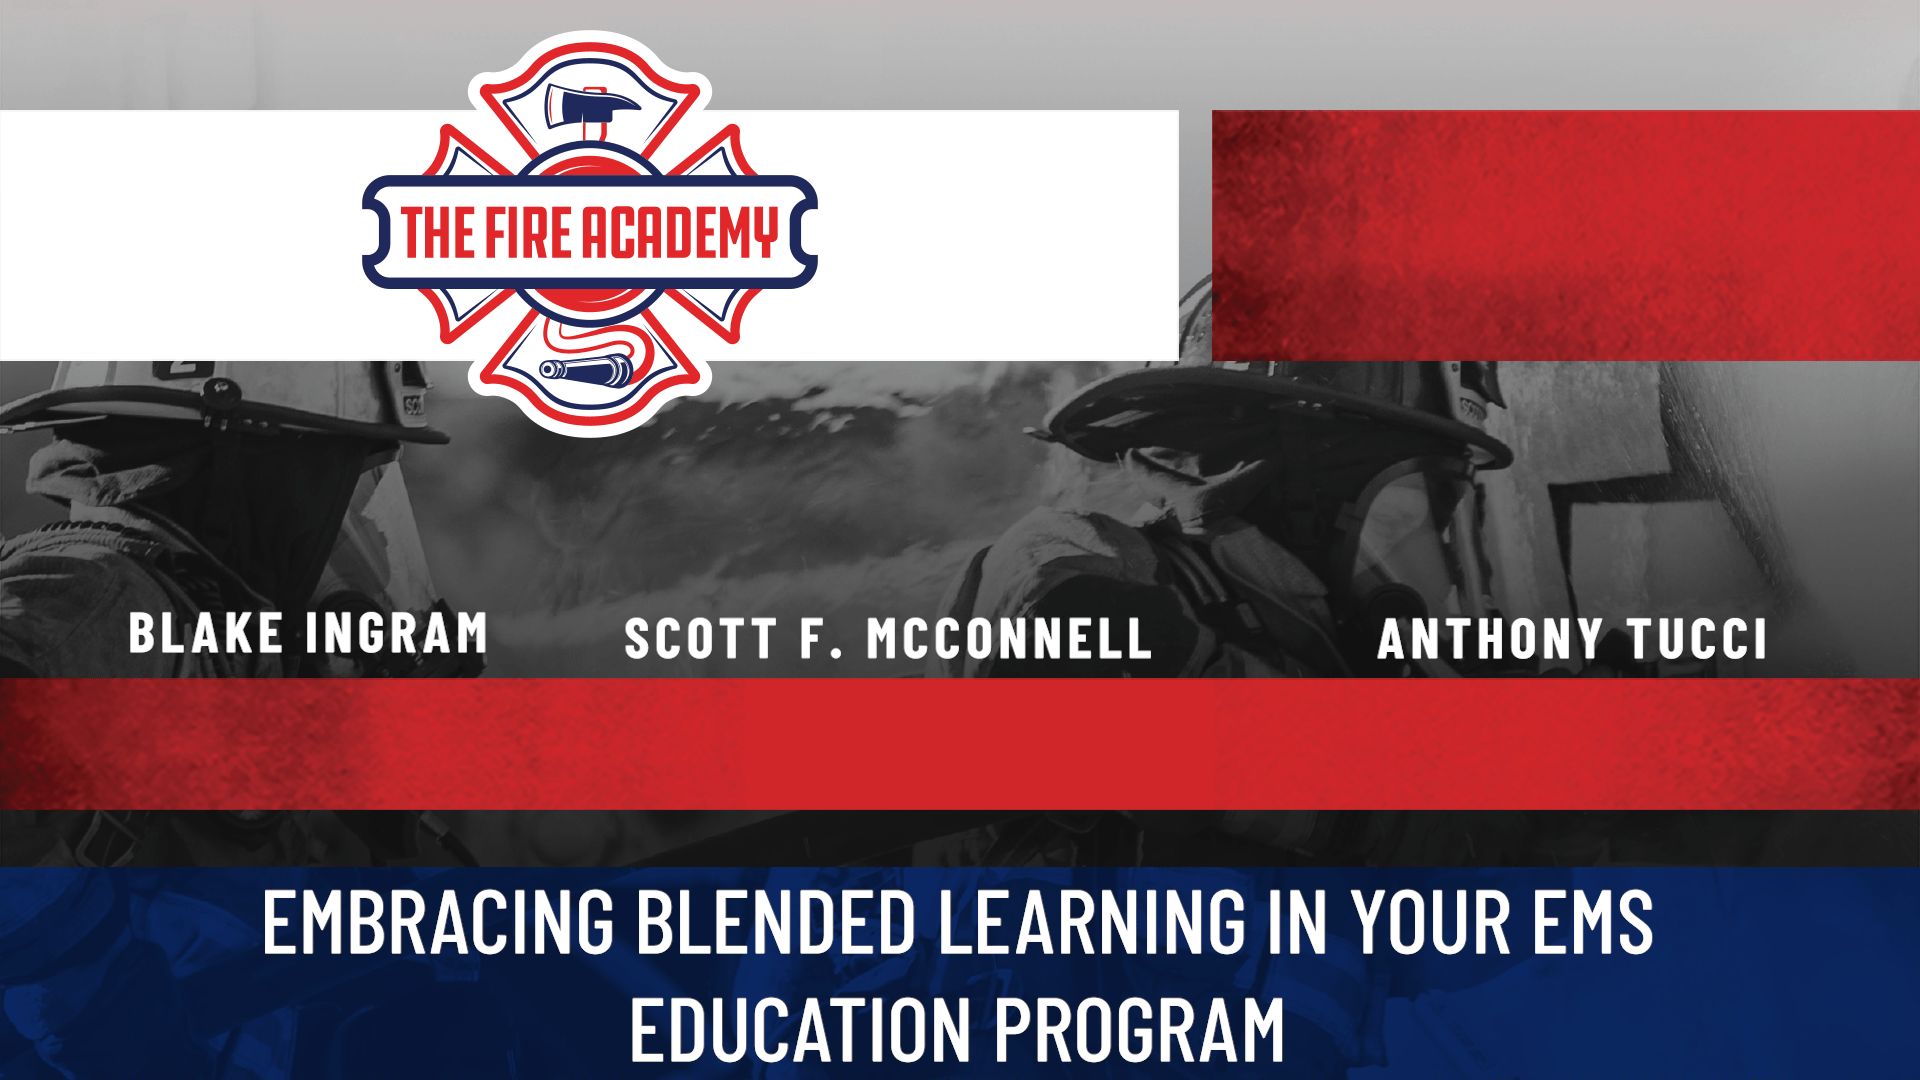 Embracing Blended Learning in Your EMS Education Program